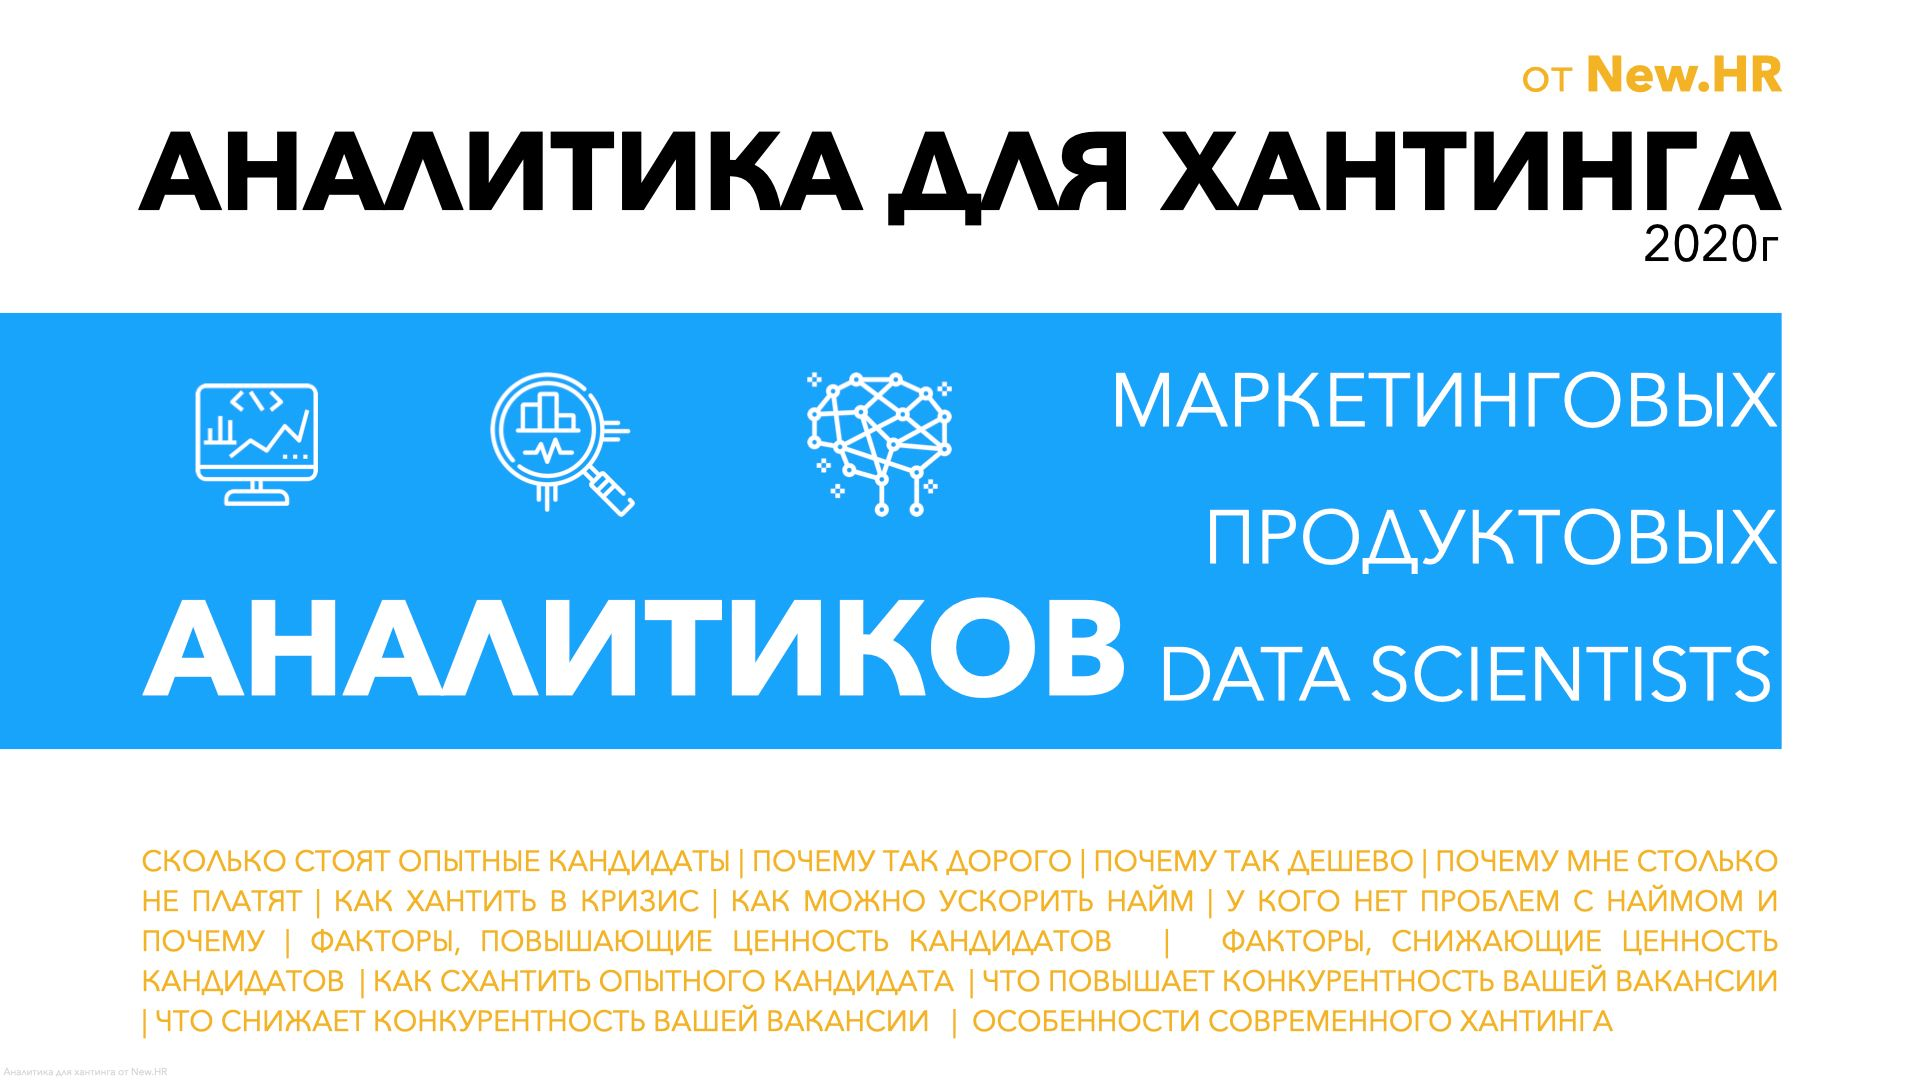 Аналитика для хантинга аналитиков (продуктовых, маркетинговых и data scientists)